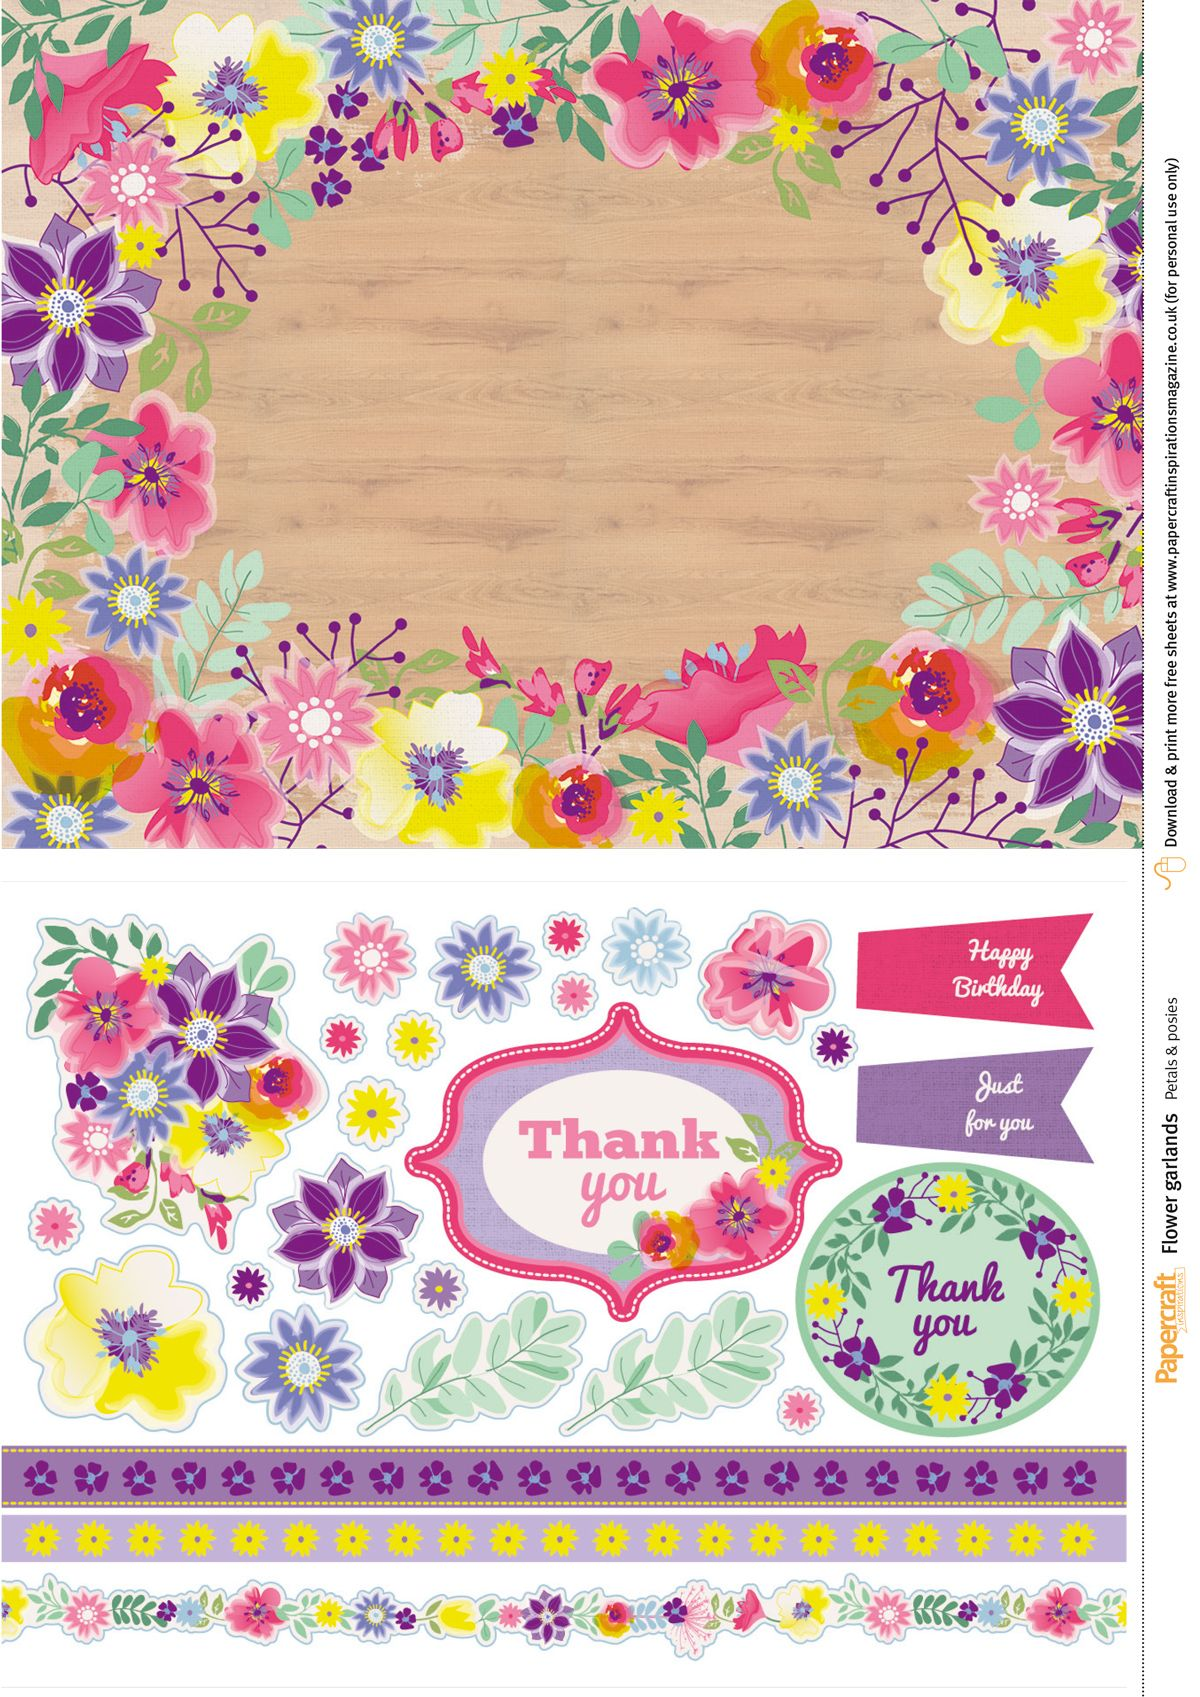 Flower garland free papers from Papercraft Inspirations magazine